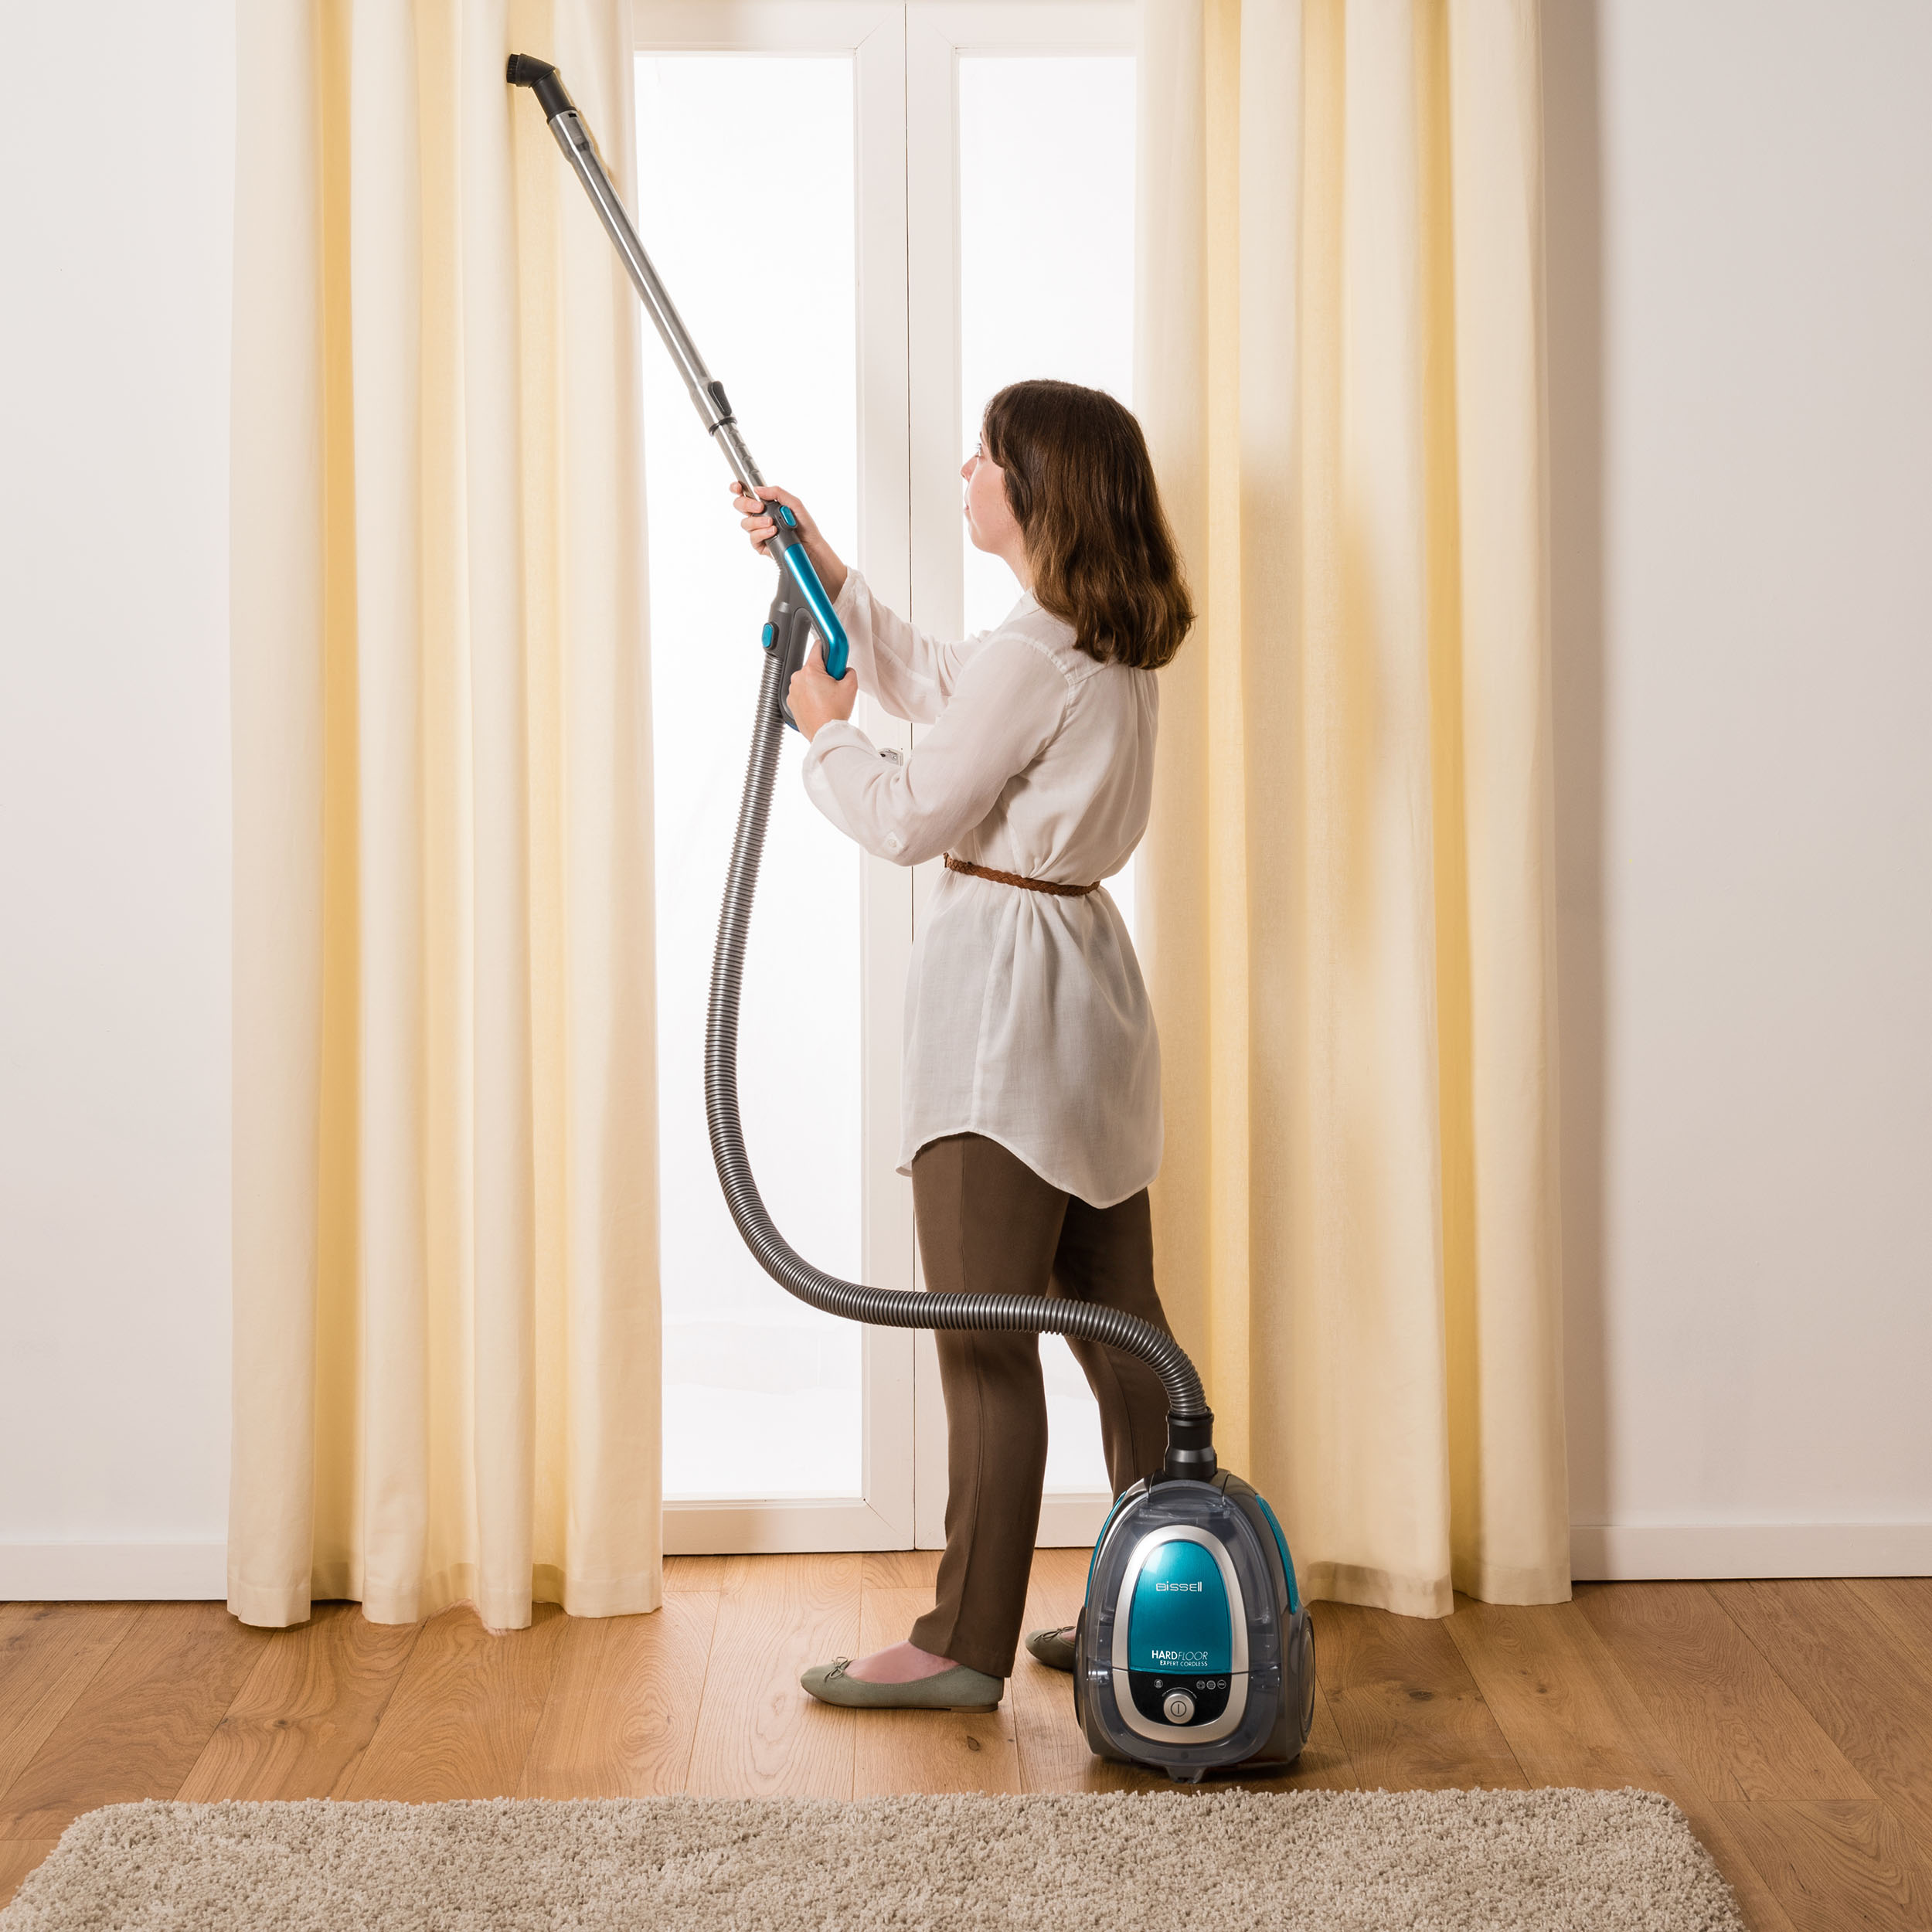 ... 2001 BISSELL Hard Floor Expert 36V Cordless Canister Vacuum, ...